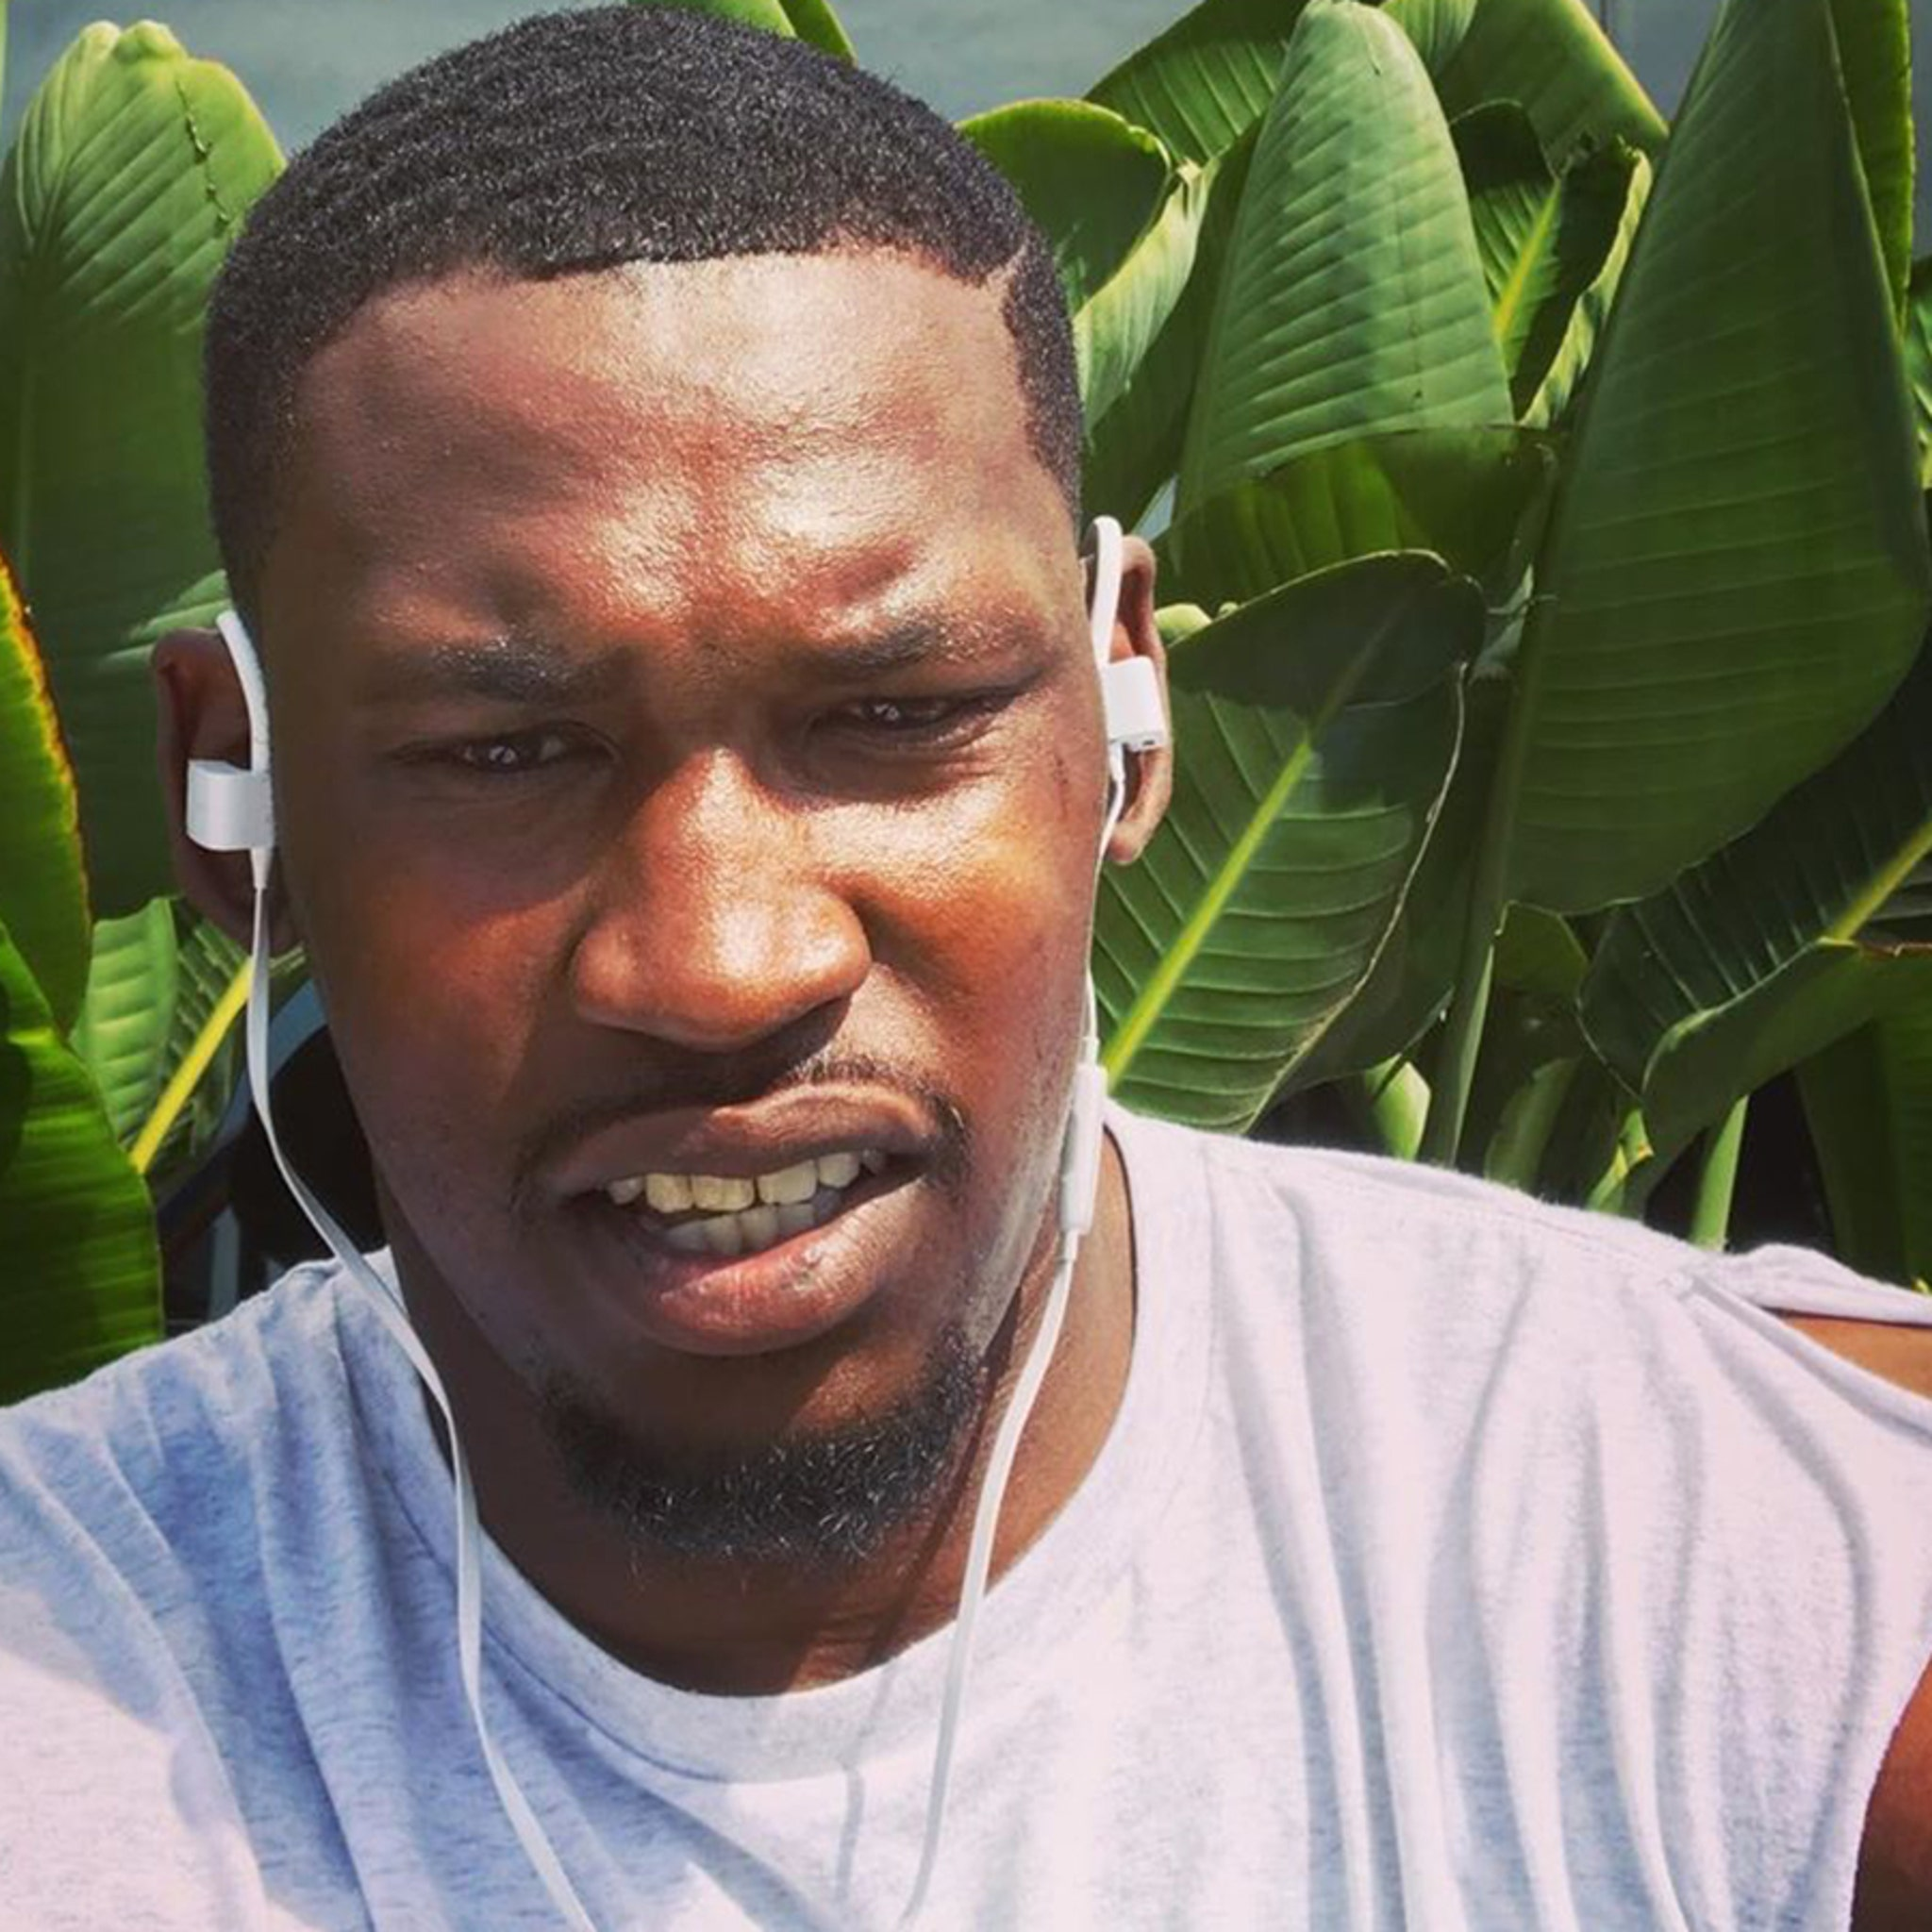 Aldon Smith Says Hes Sober And Supported On 30th Birthday